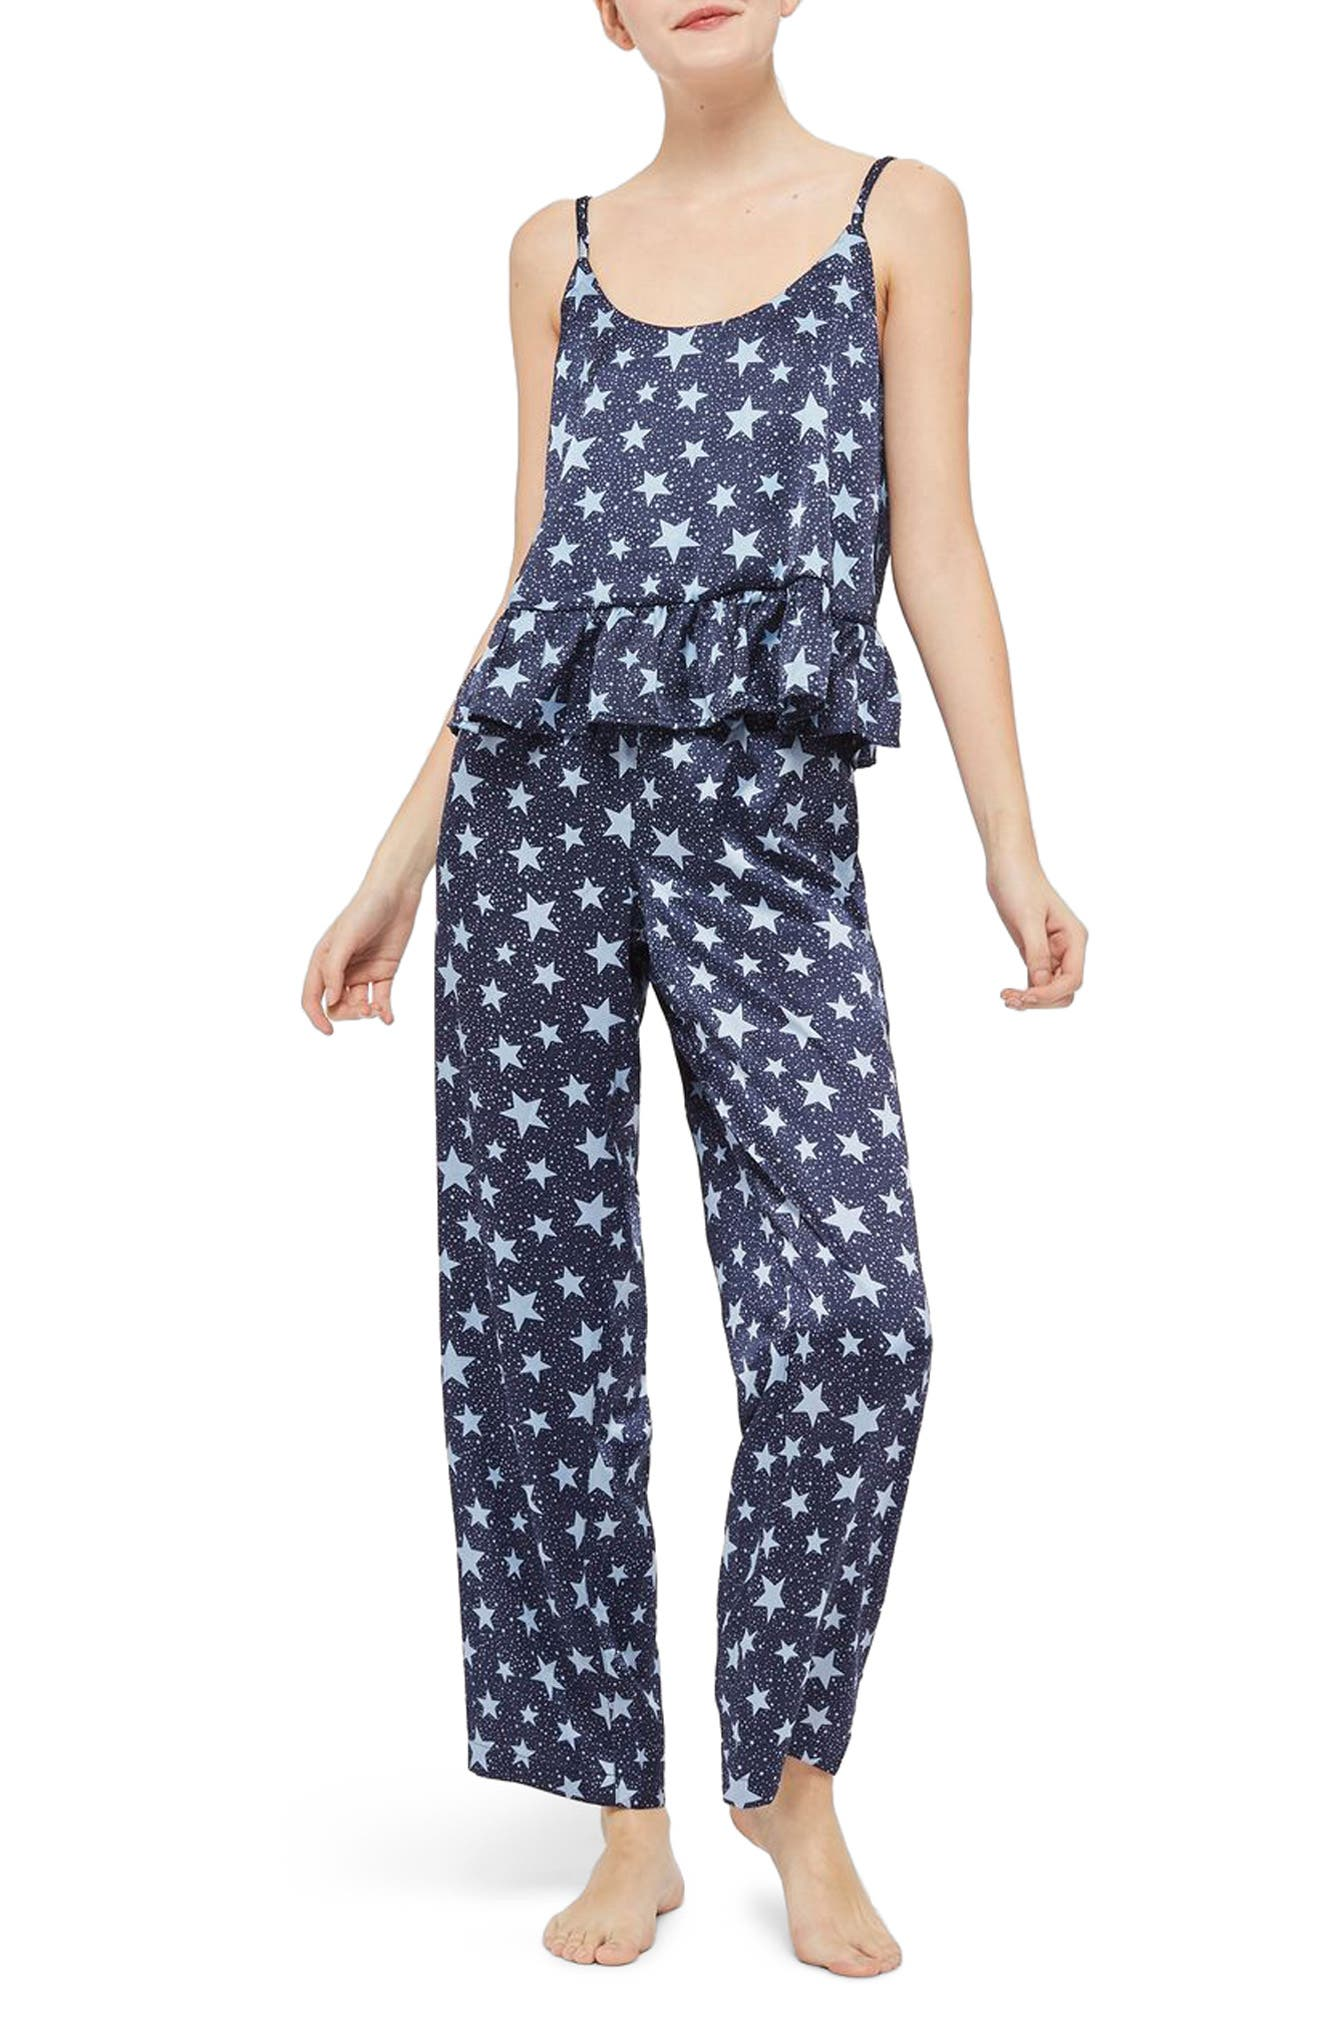 Star Satin Pajamas,                         Main,                         color, Navy Blue Multi